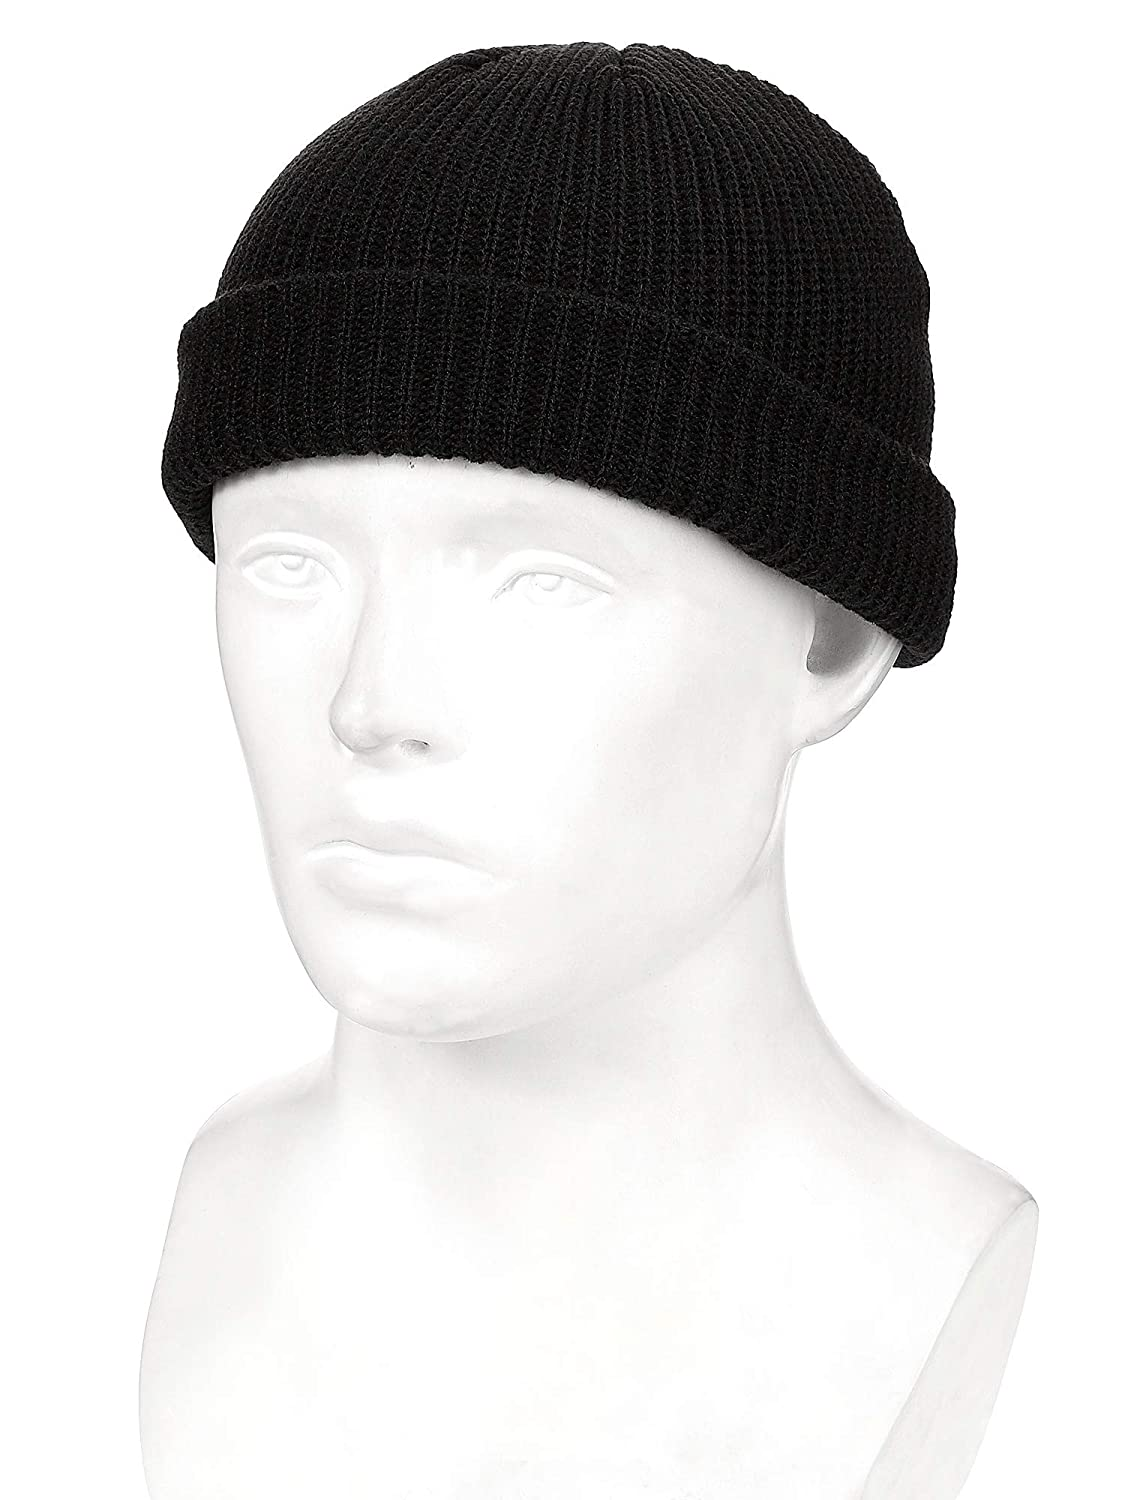 SATINIOR 2 Pieces Winter Trawler Beanie Hat Short Fisherman Skullcap Knit Cuff Beanie Cap for Men Daily Wearing